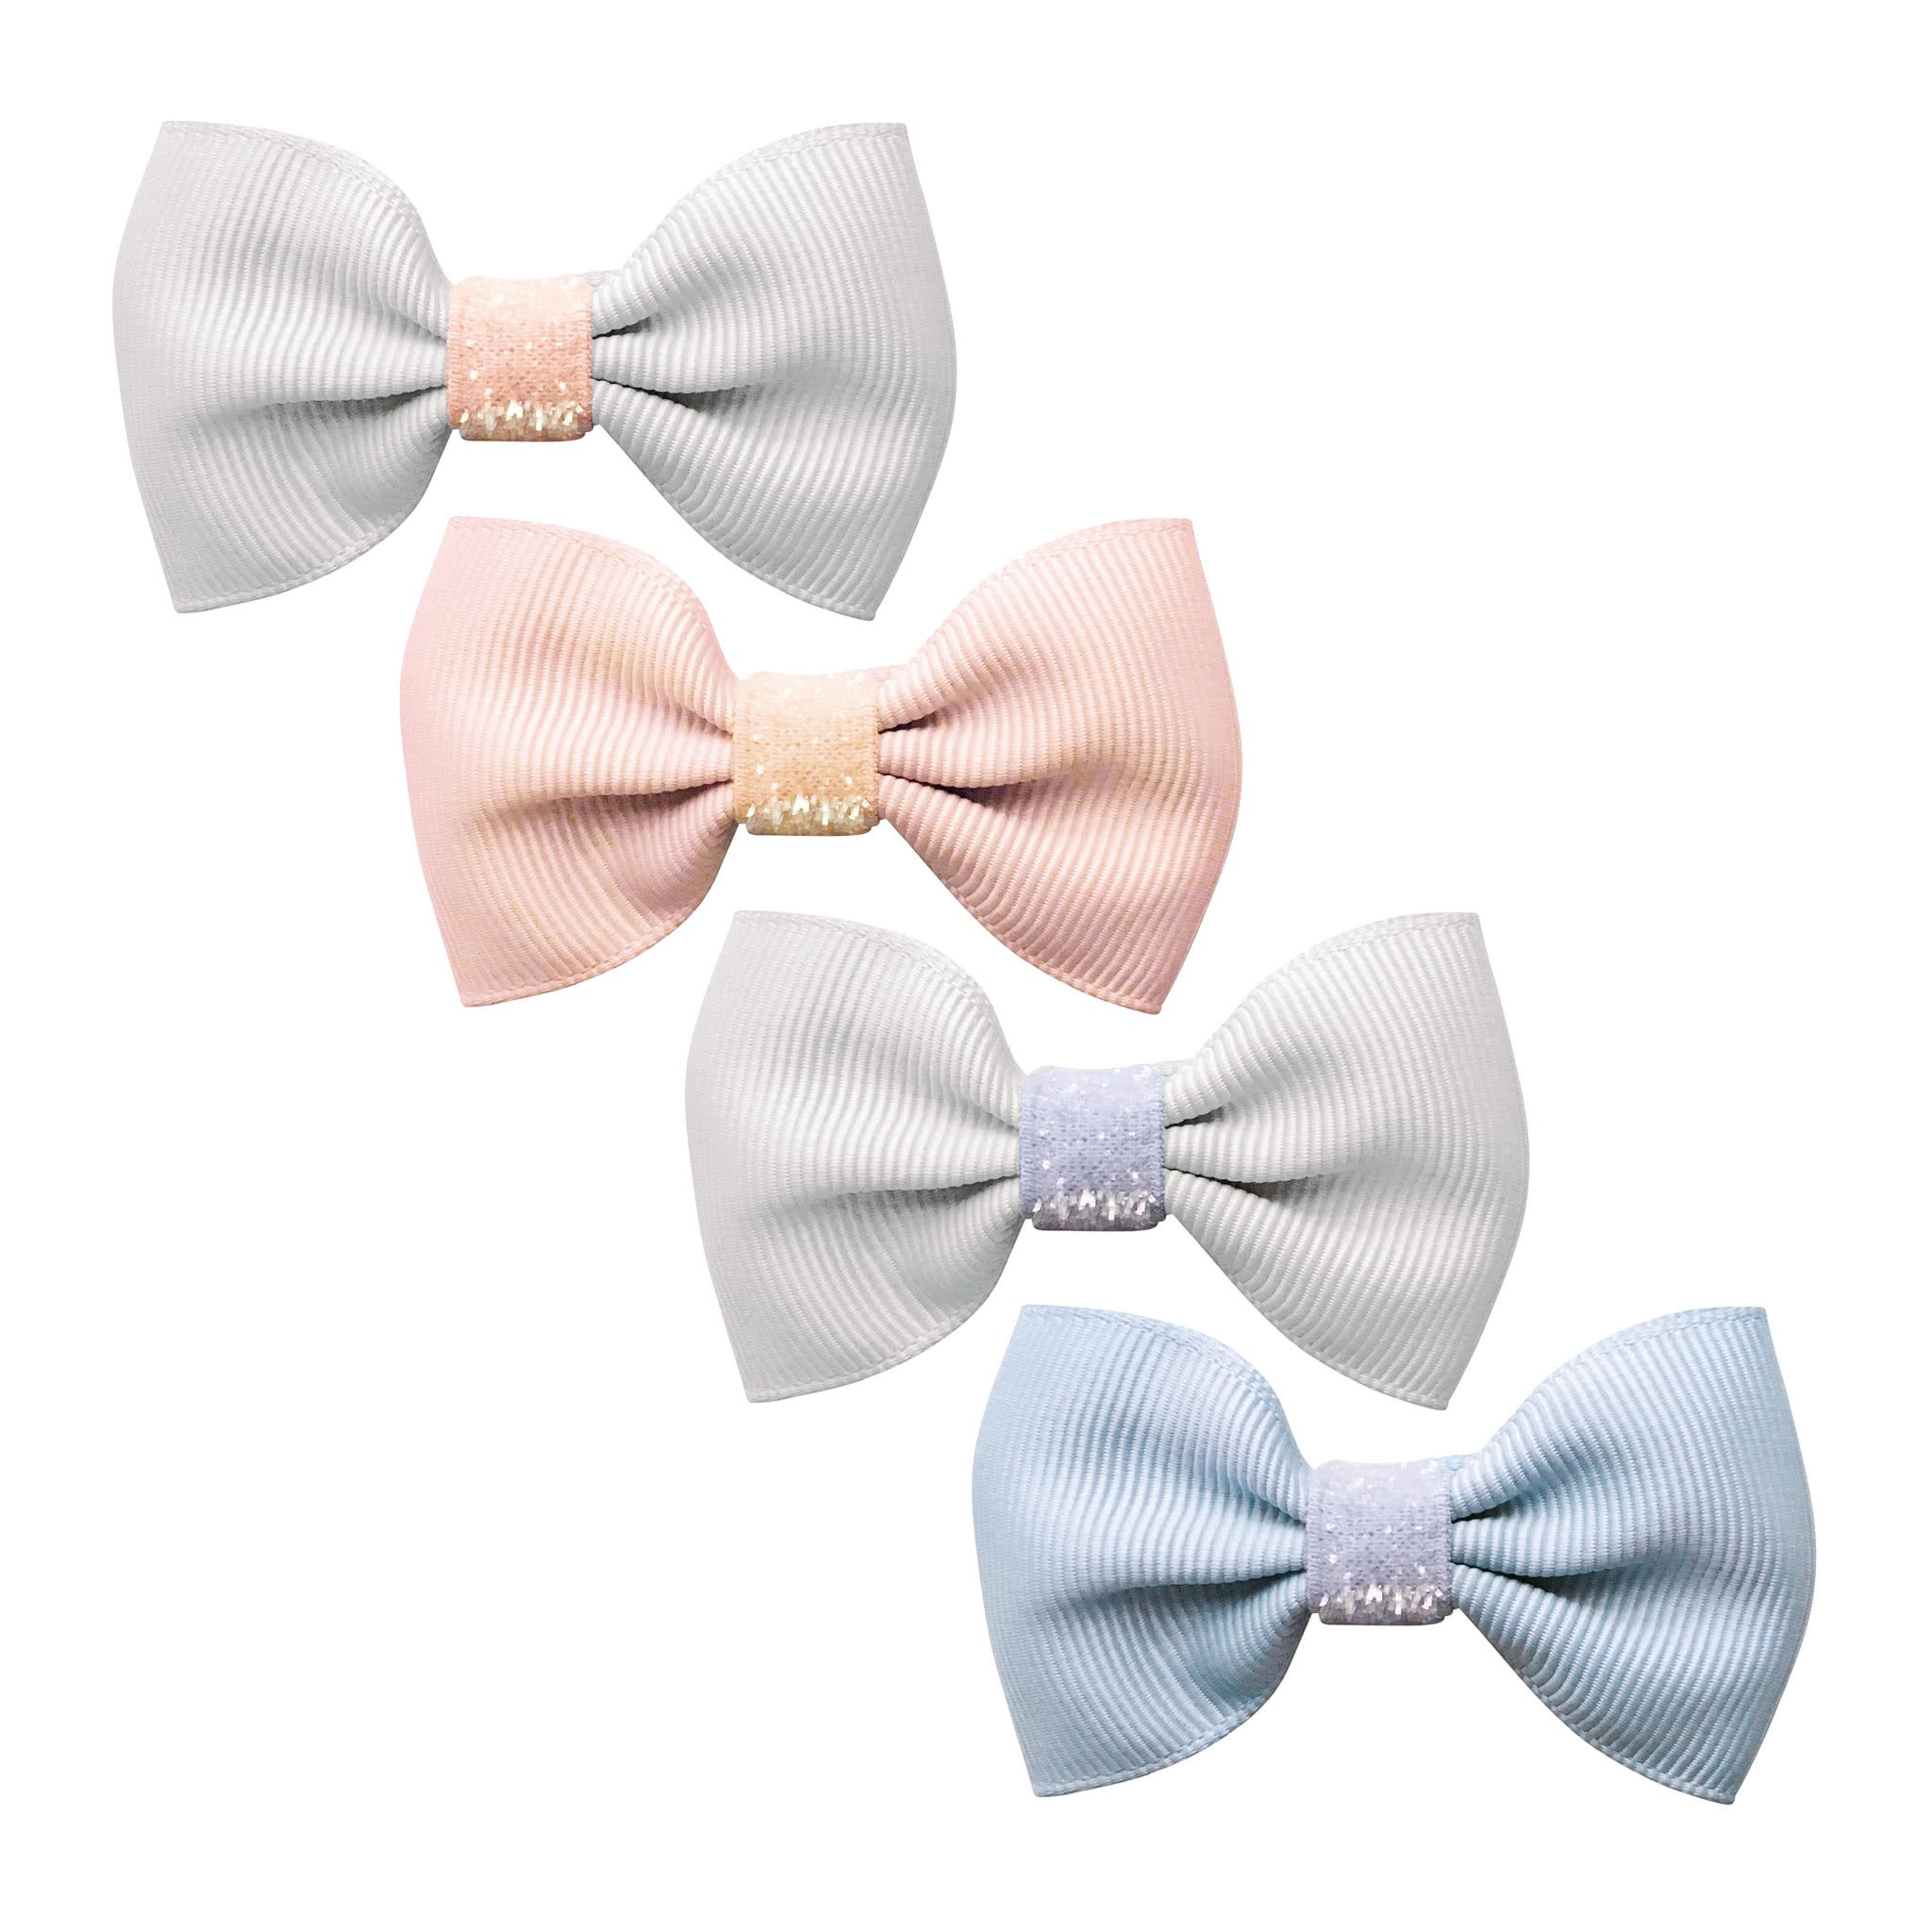 Image of Milledeux® Gift set - 4 Small bowtie bows - alligator clip - Colored Glitter - pink/blue